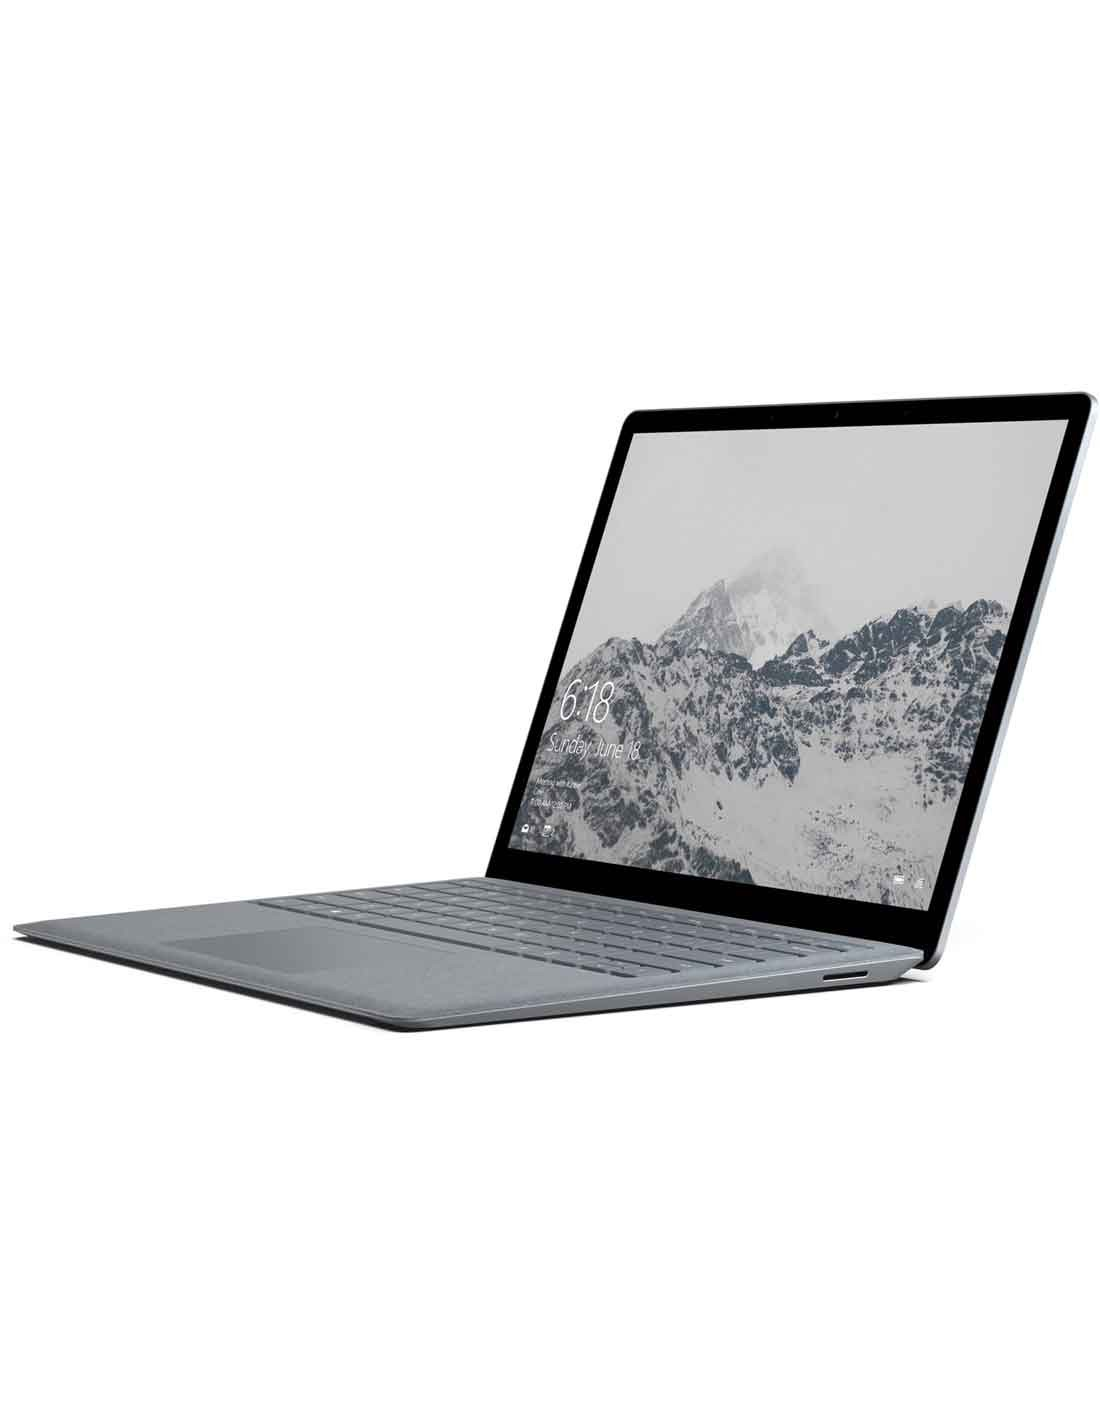 Microsoft Surface Laptop Platinum at a cheap price and free delivery in Dubai